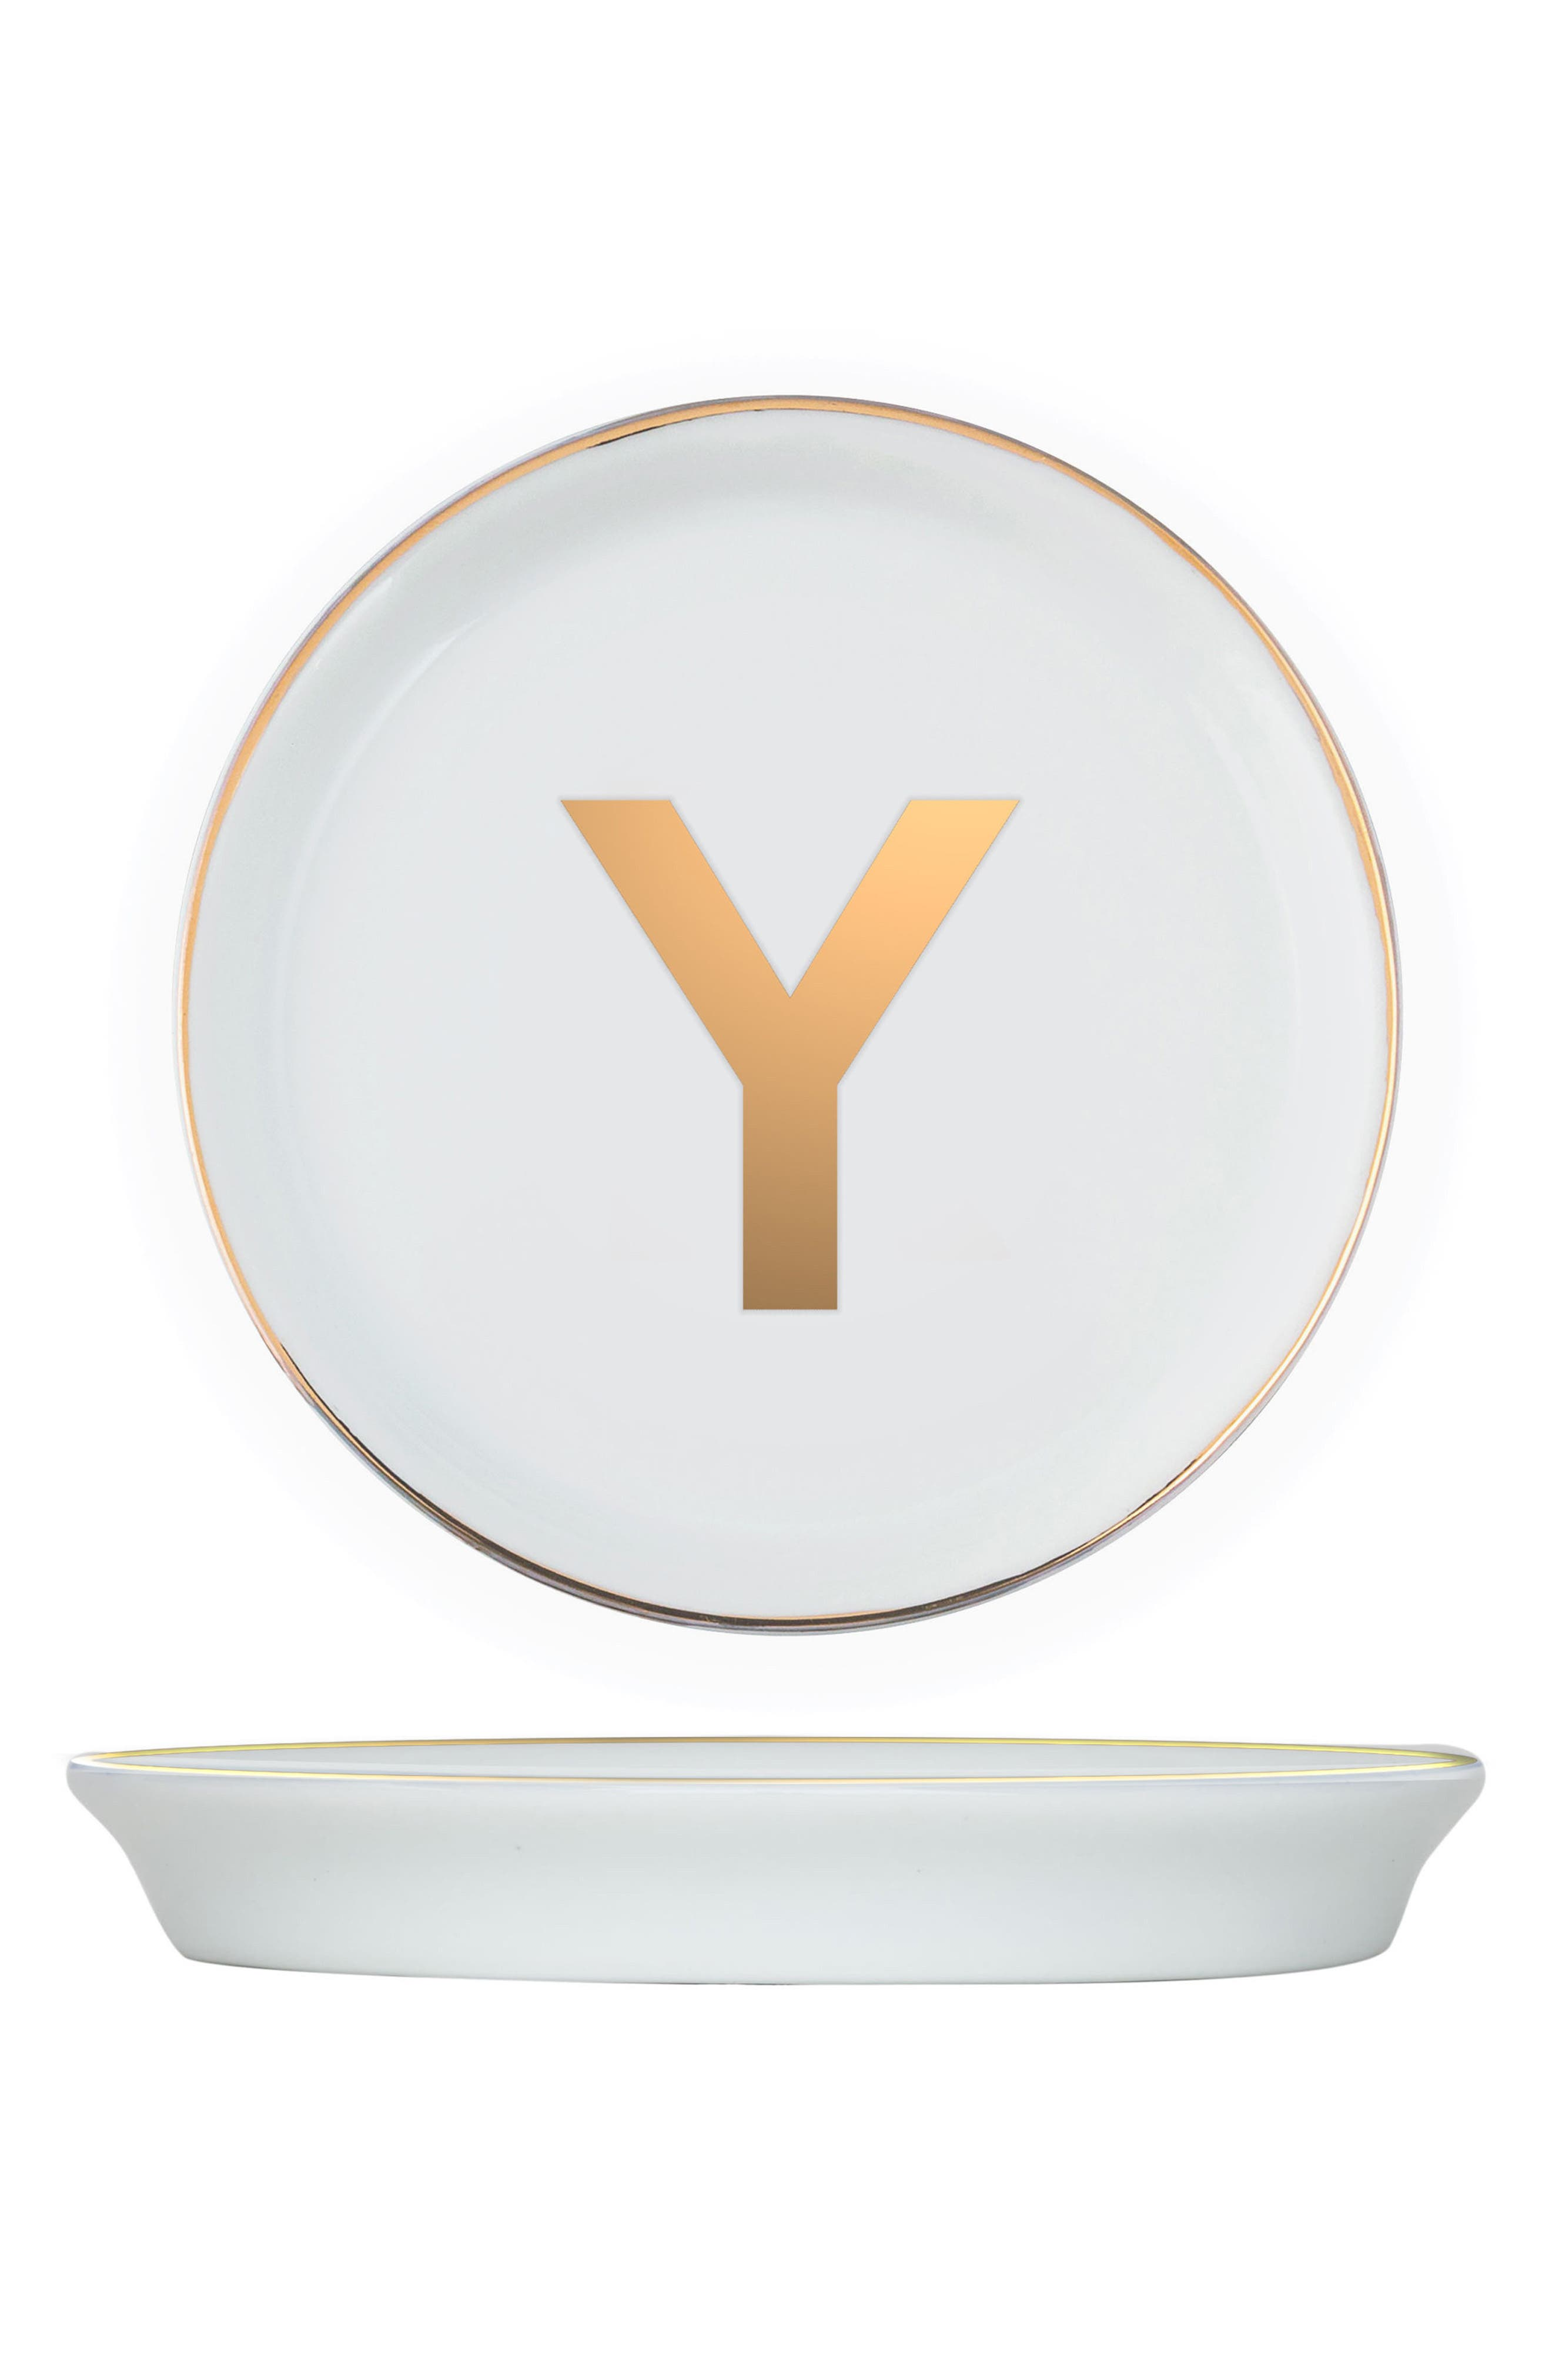 Brooklyn Set of 4 Porcelain Initial Coasters,                         Main,                         color, Y